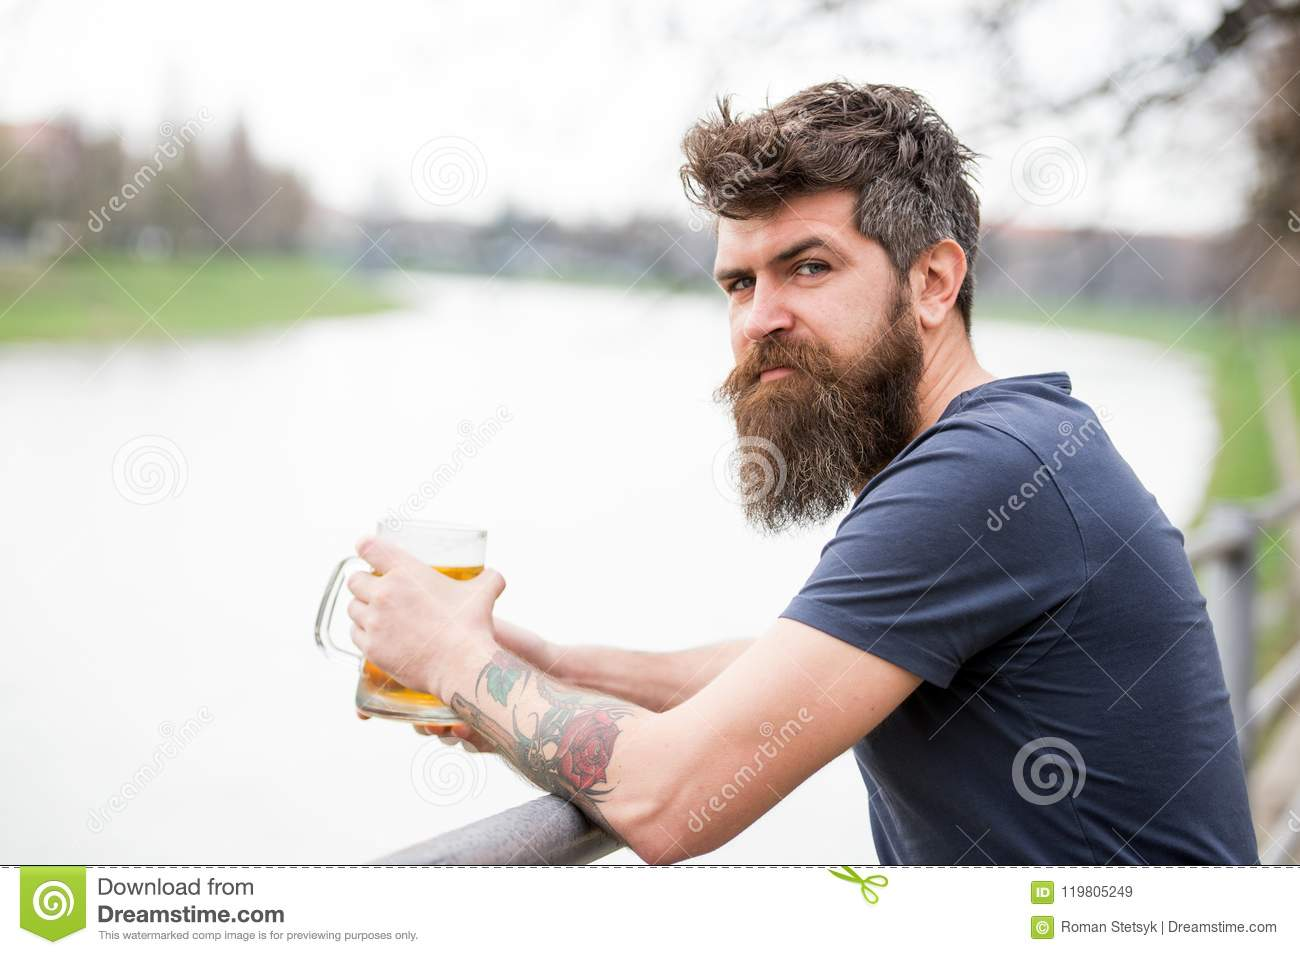 Man with long beard looks relaxed. Man with beard and mustache on calm face, river background, defocused. Bearded man